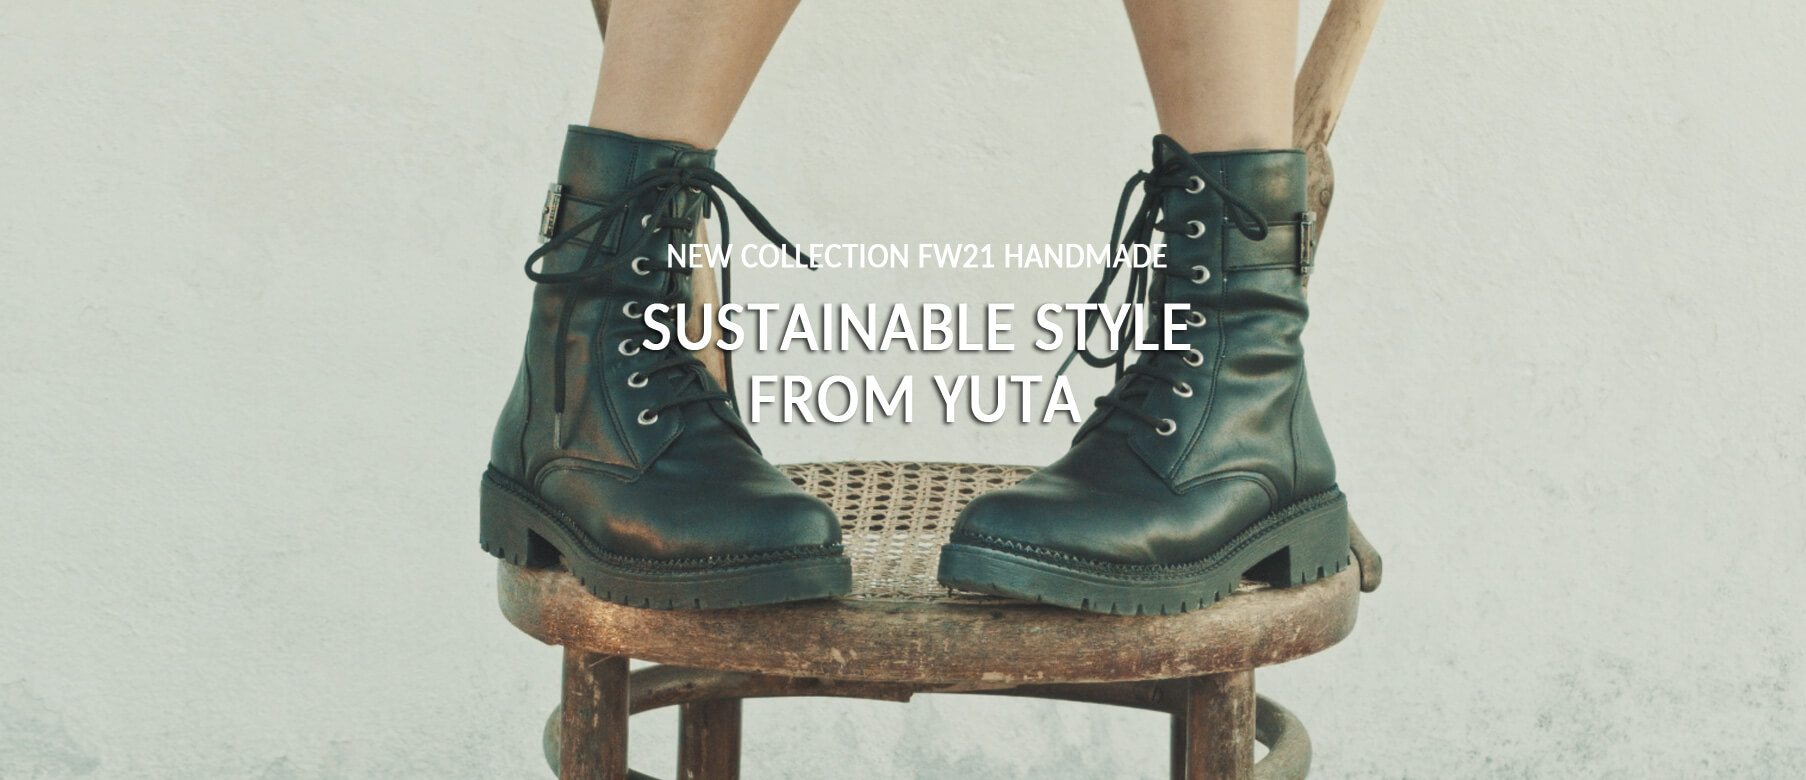 Homepage: Yuta Shoes